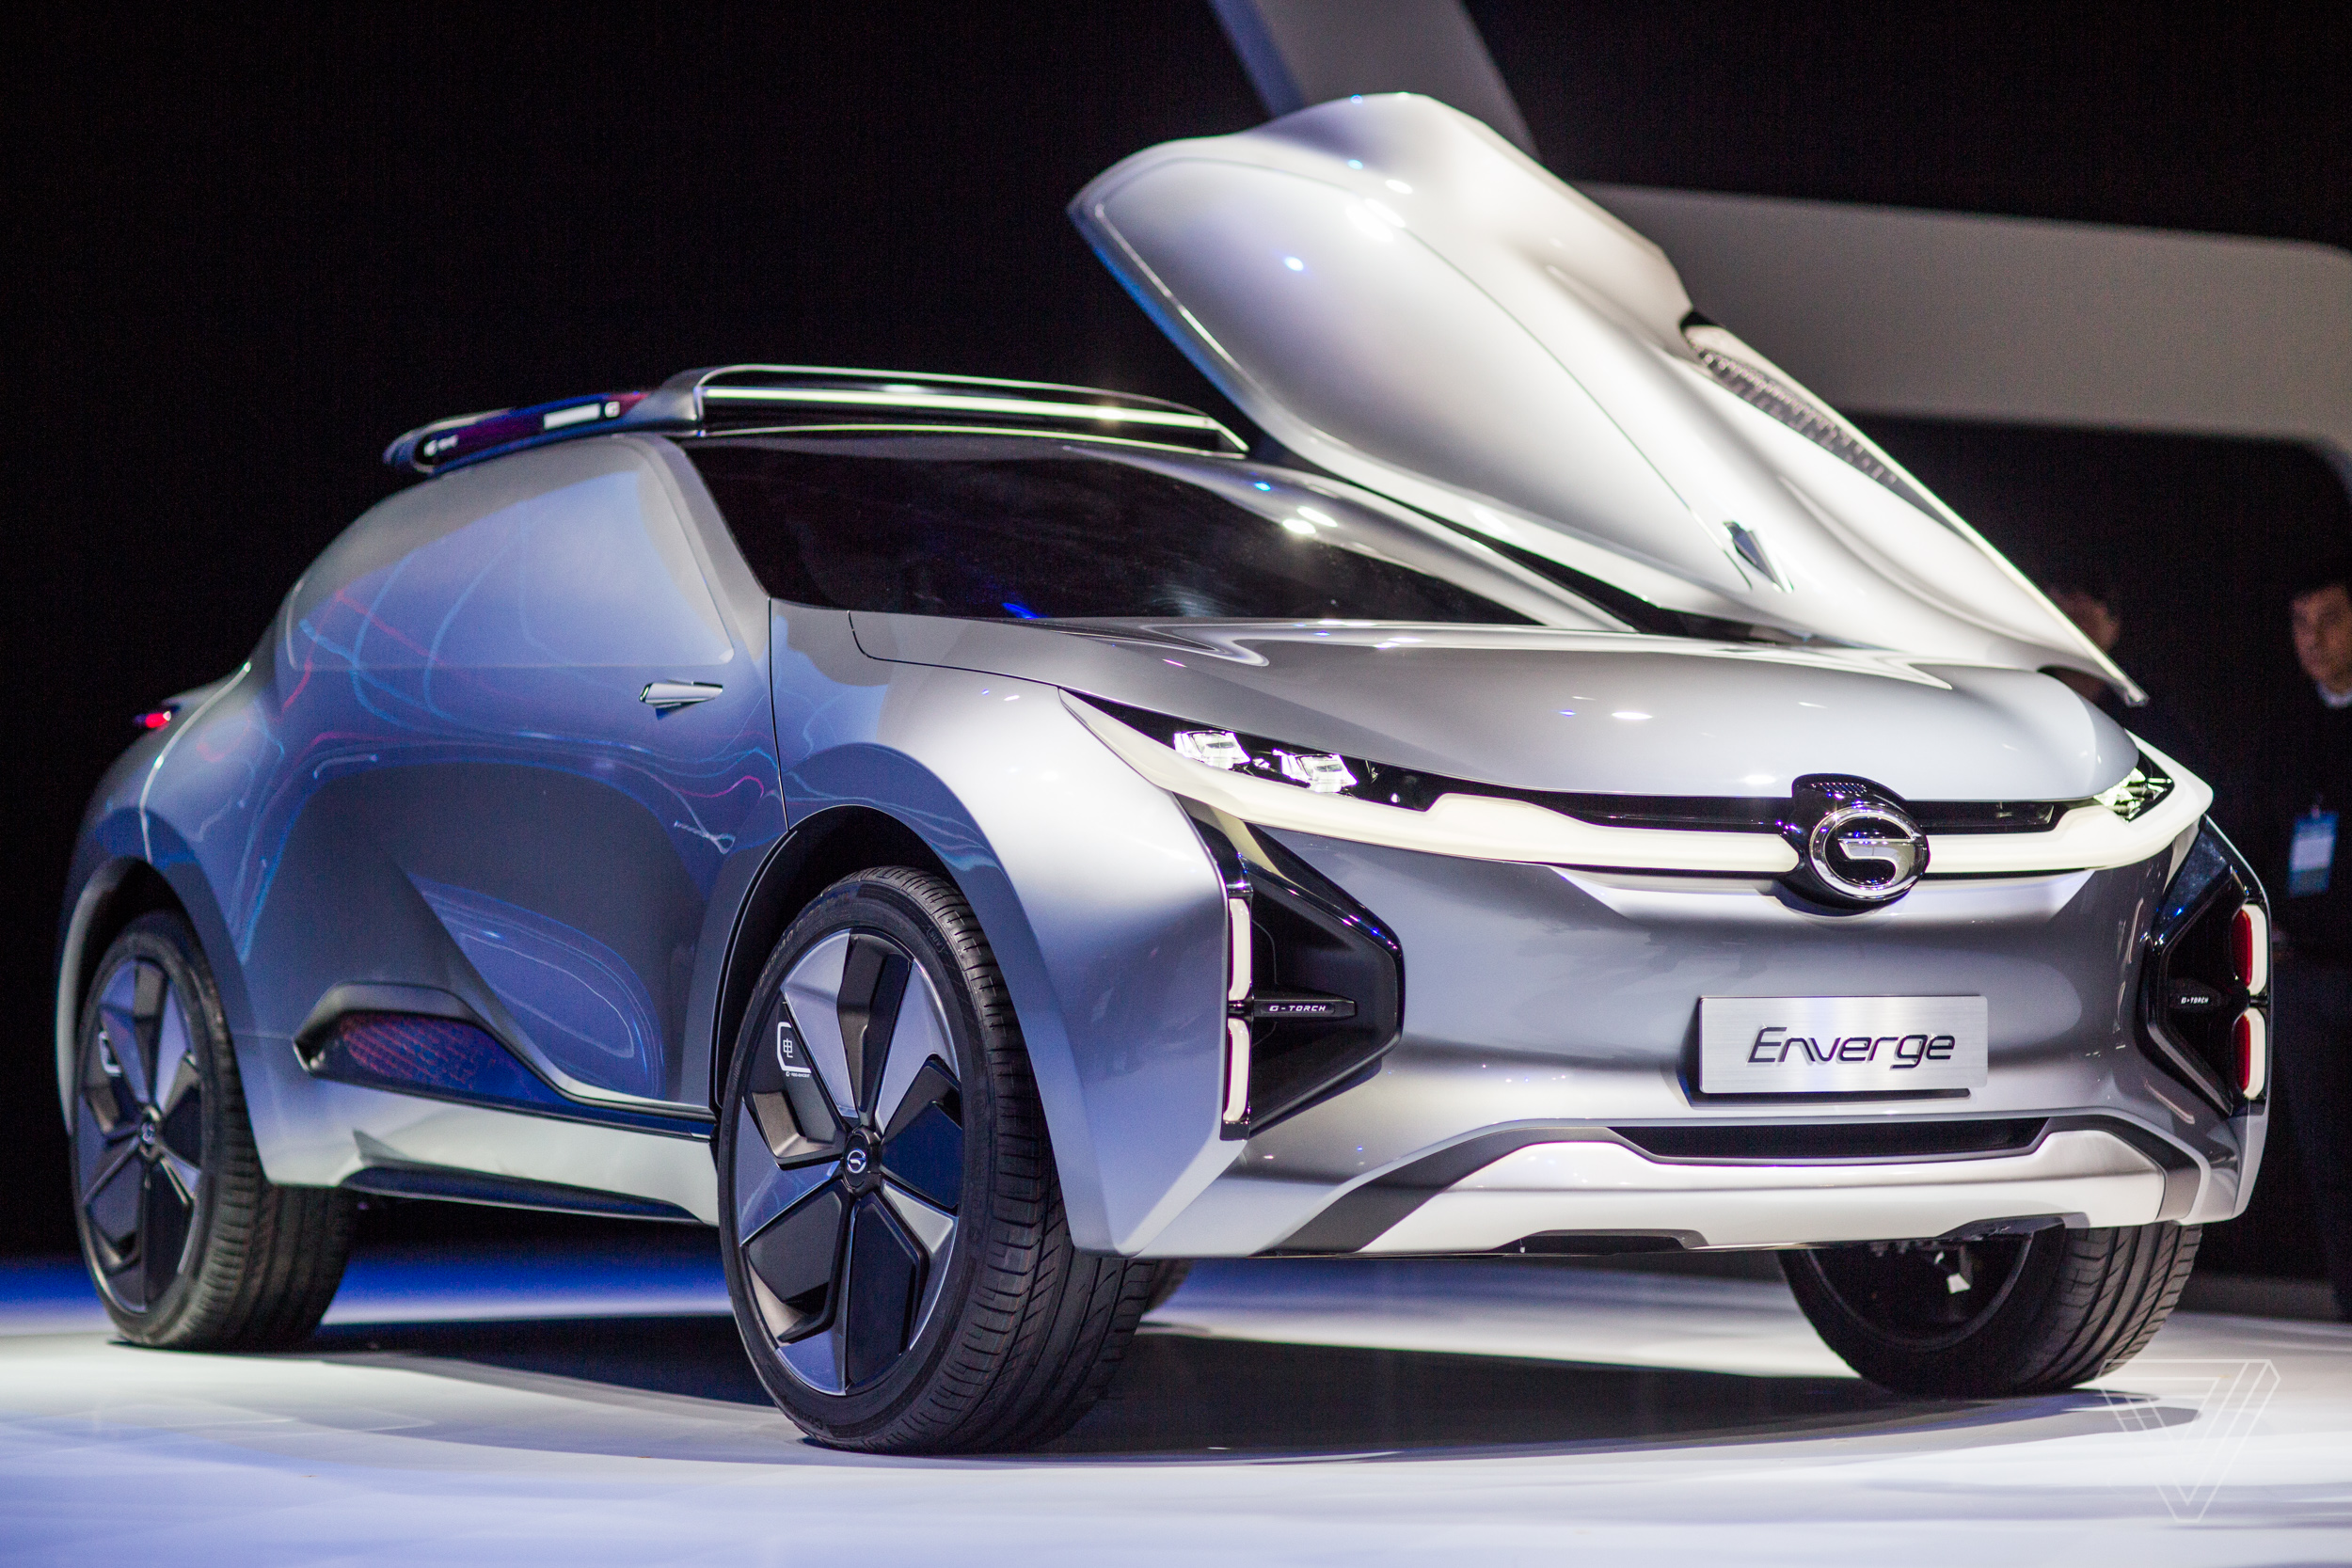 The Enverge is a deadly looking electric car from a ...